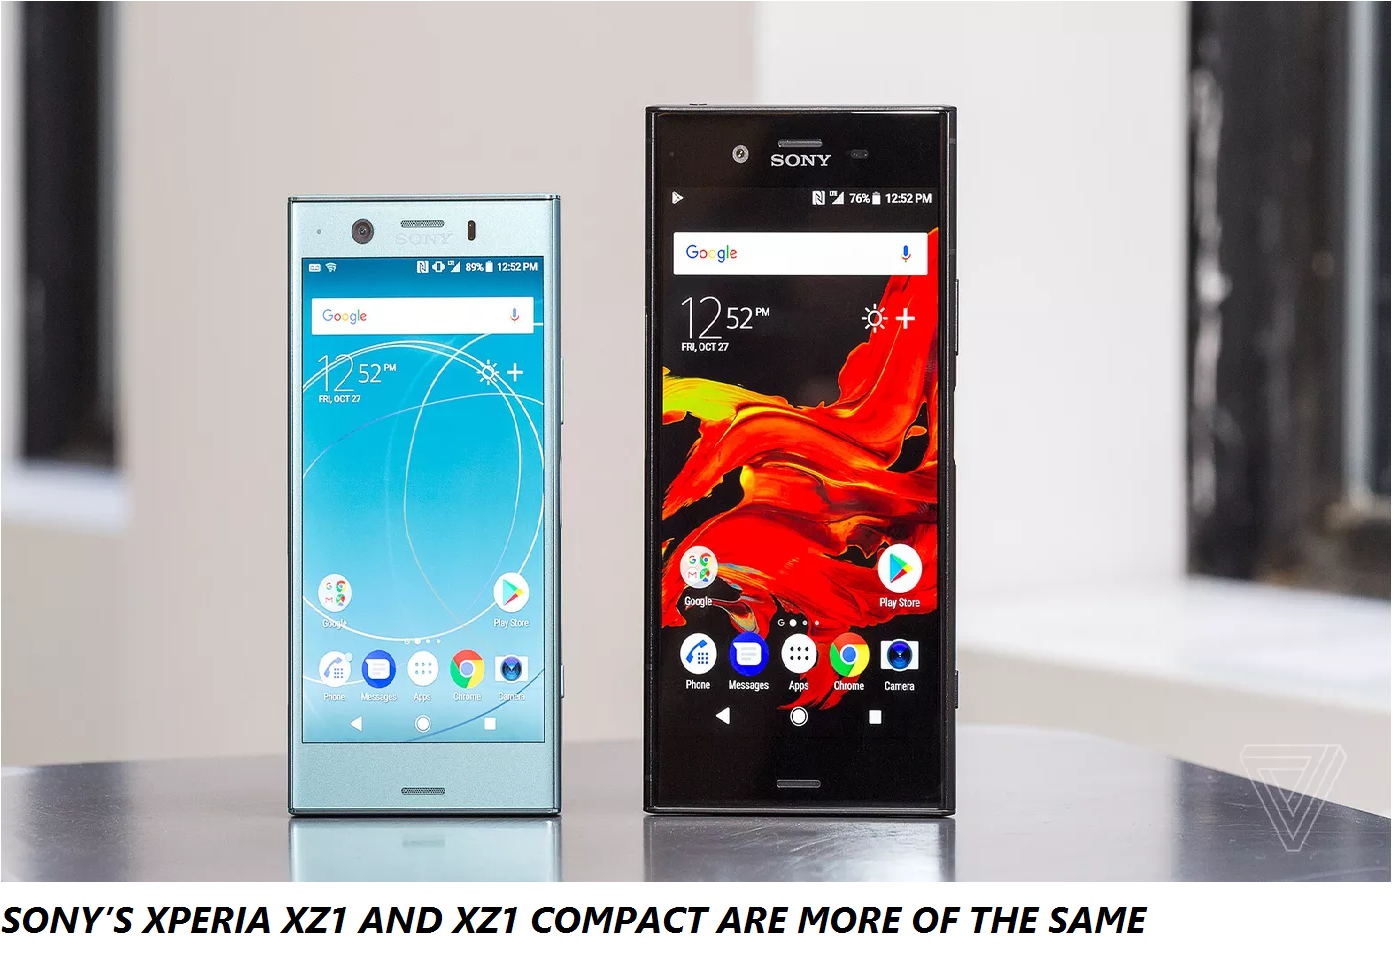 SONY'S XPERIA XZ1 AND XZ1 COMPACT ARE MORE OF THE SAME